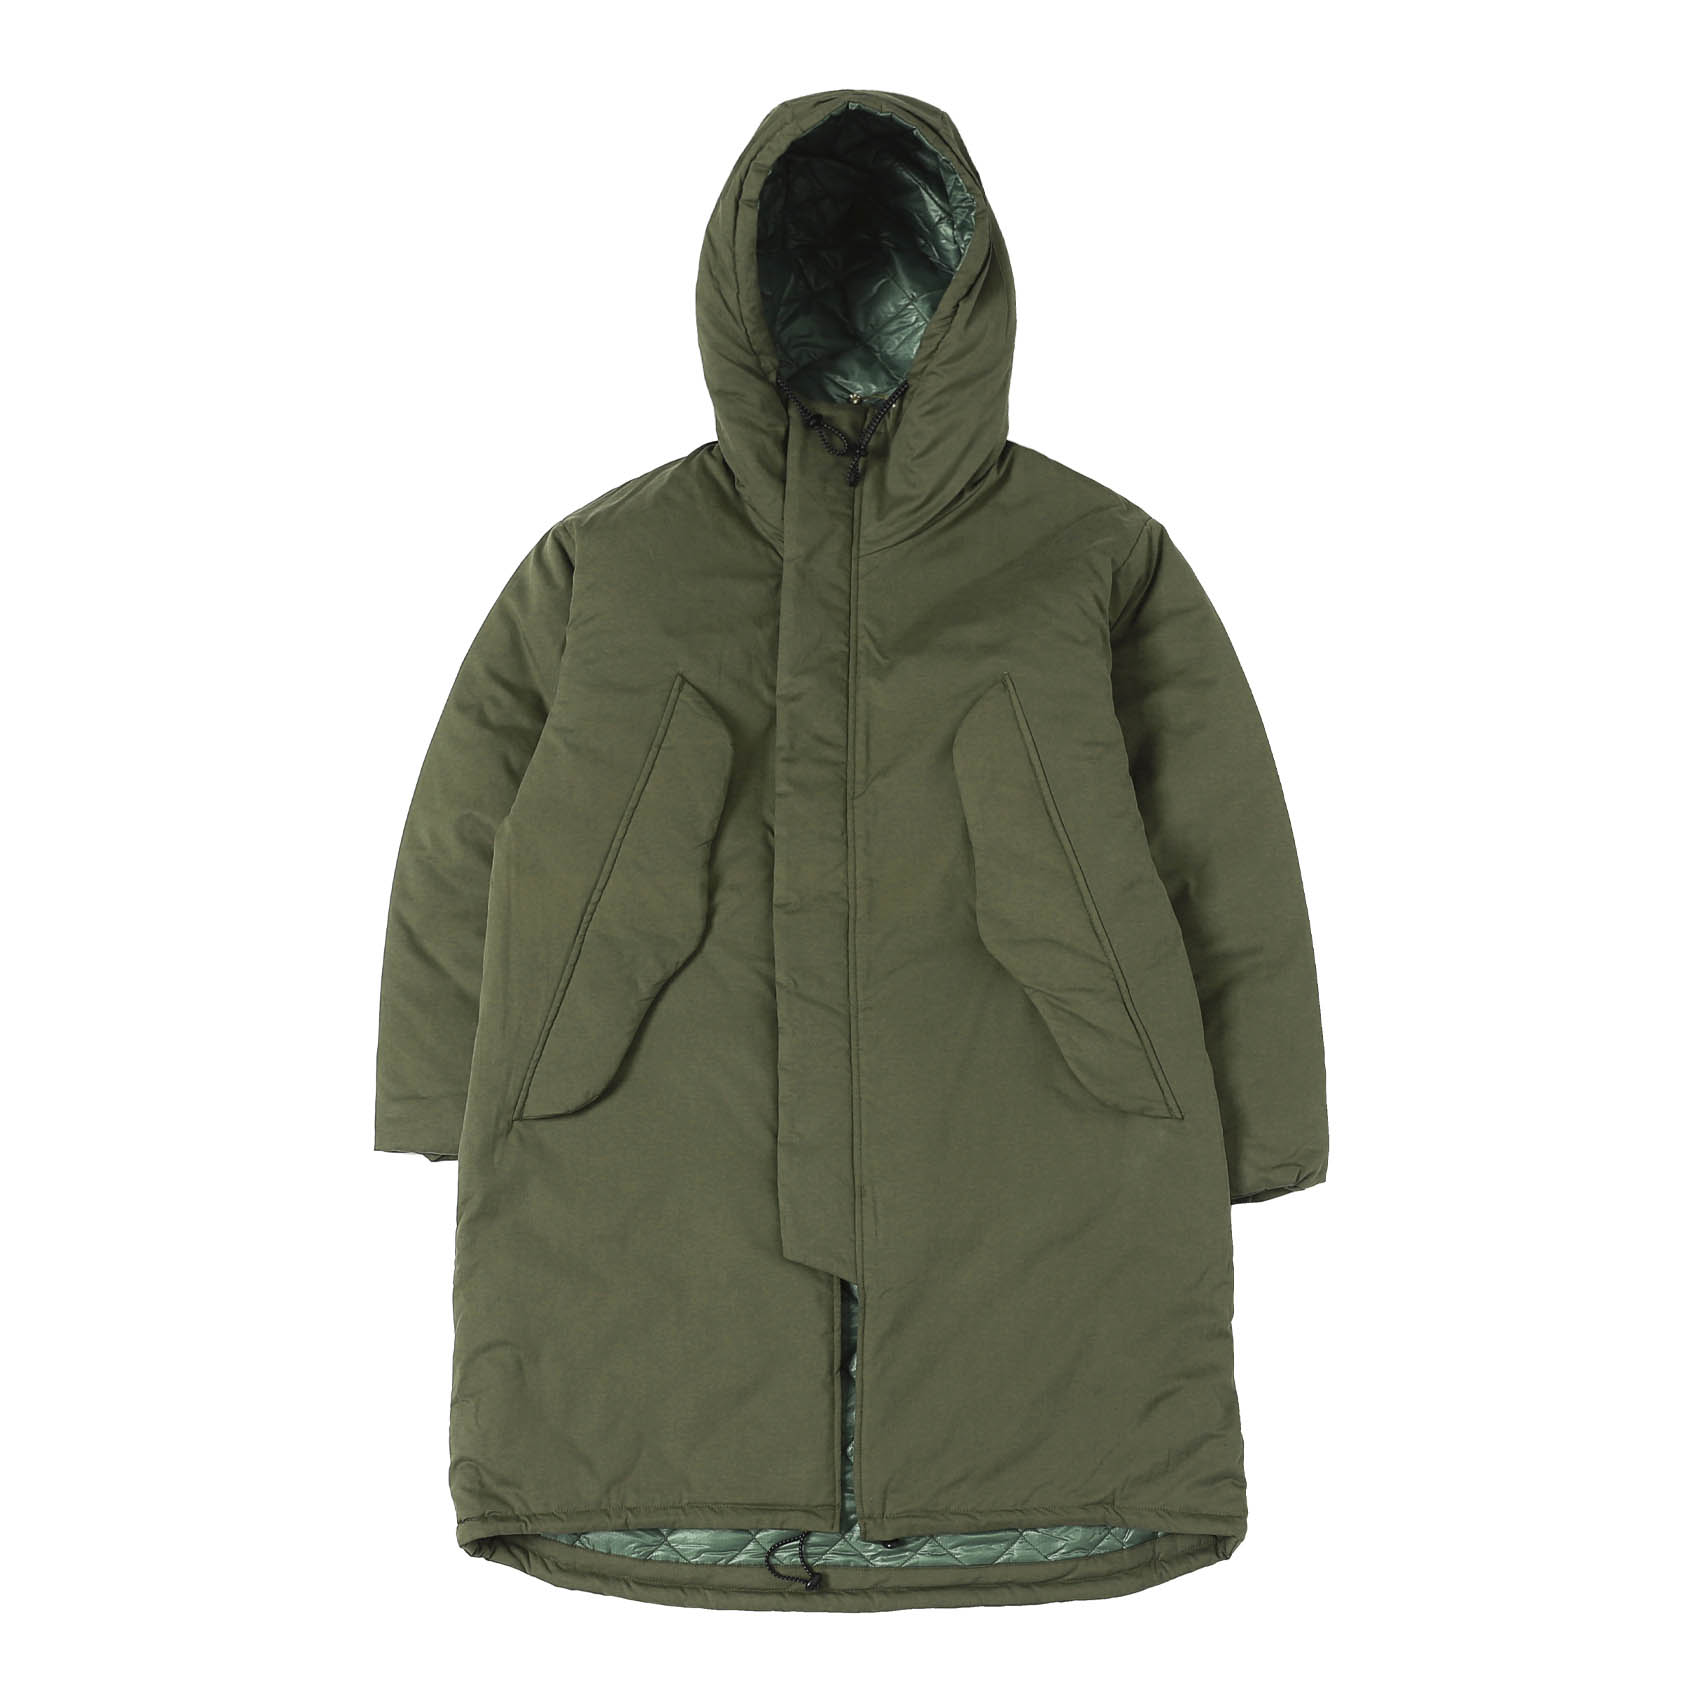 HARRY'S COAT - OLIVE